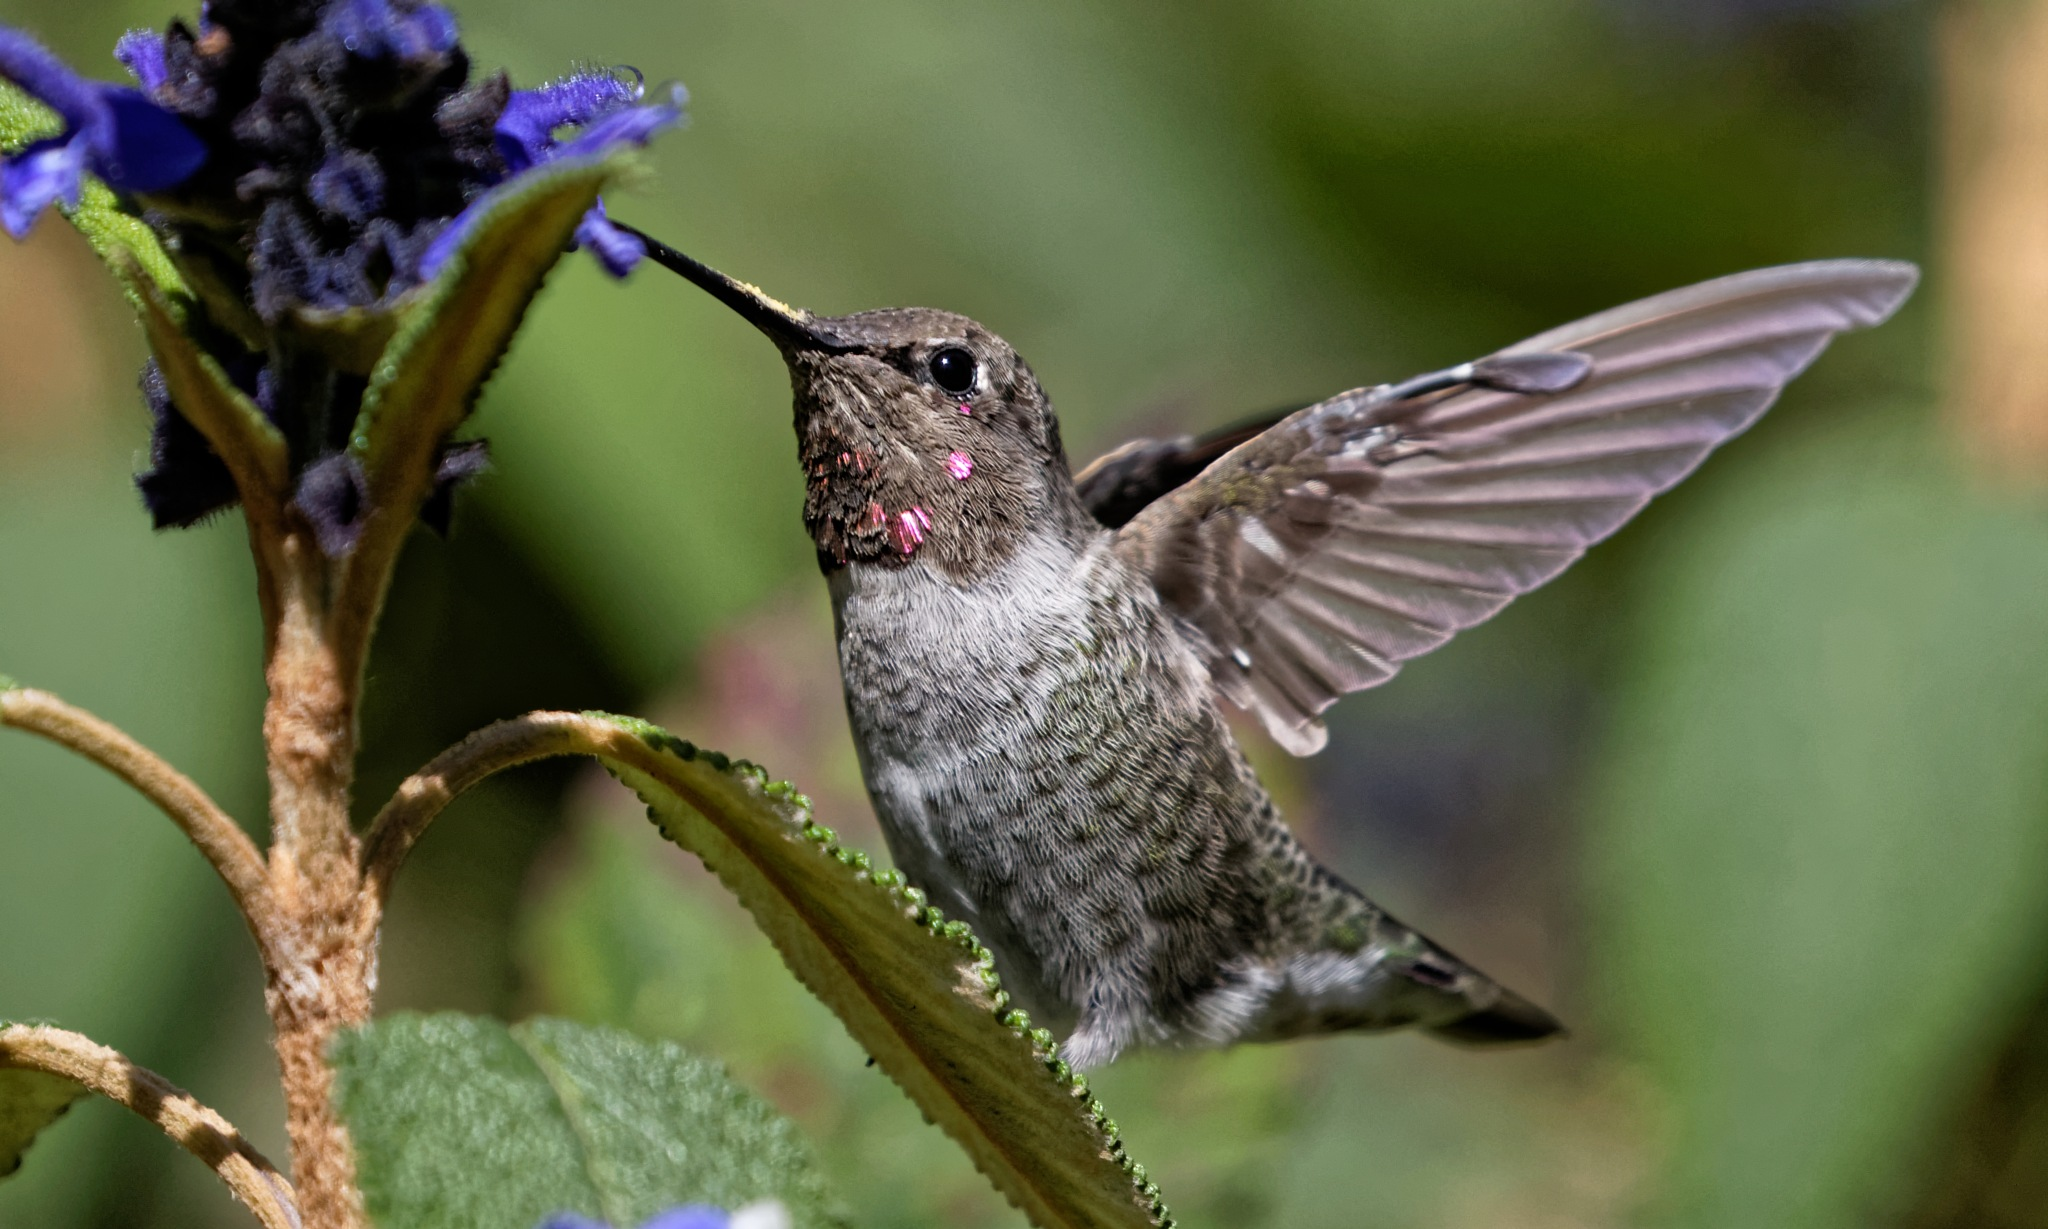 Young Hummer Man by RaphaelRaCcoon